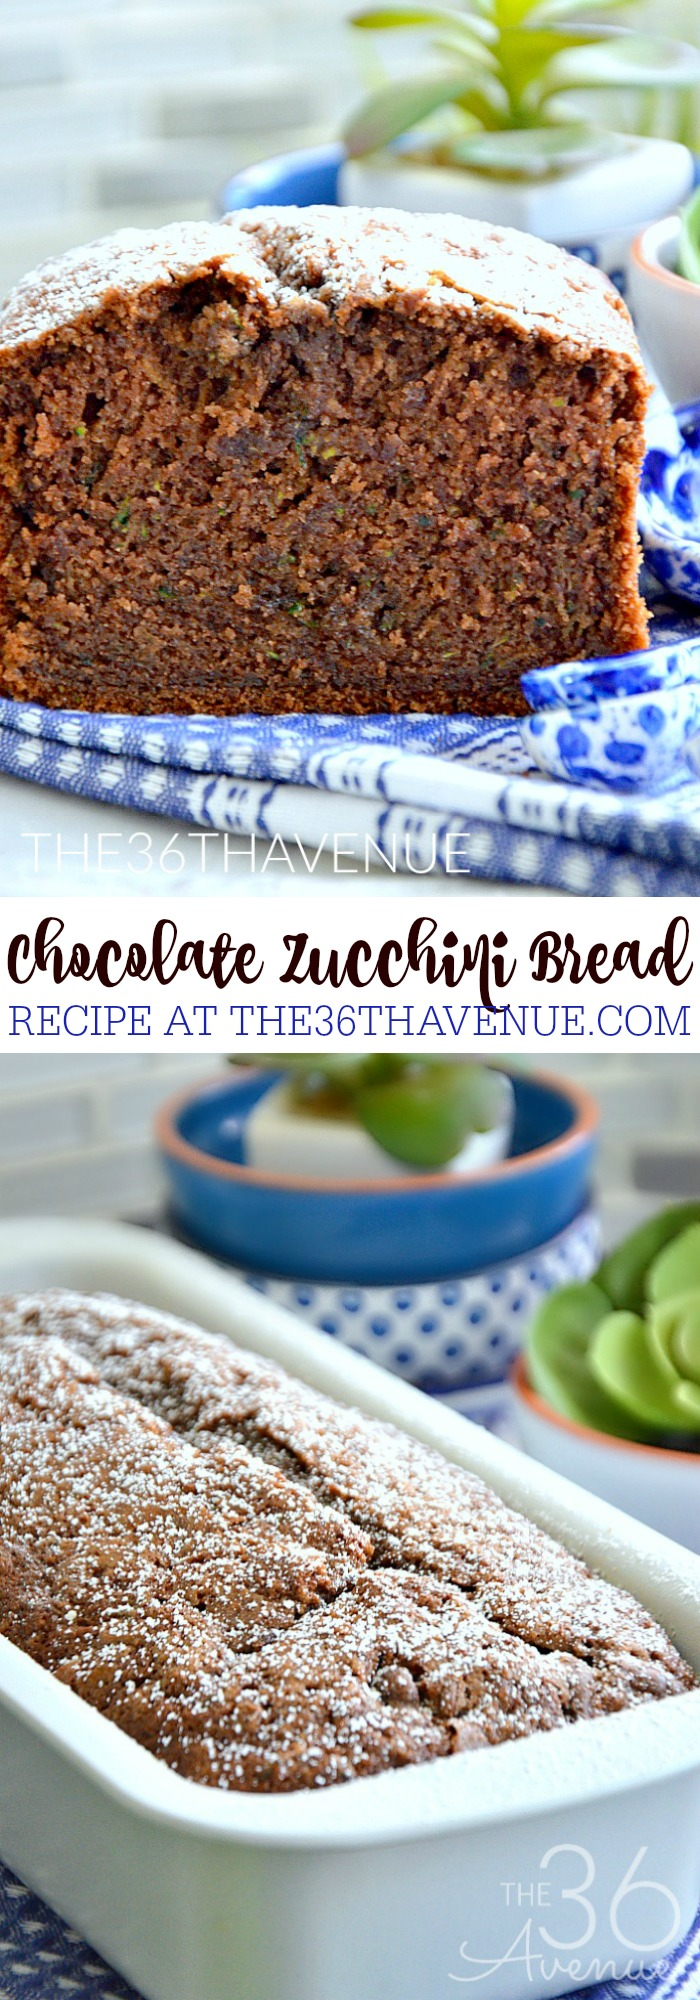 Zucchini Bread just got better with a bit of cocoa! The first time I tried this easy bread recipe I was surprised by how much my family loved this bread that has the yummy texture of a pound cake.